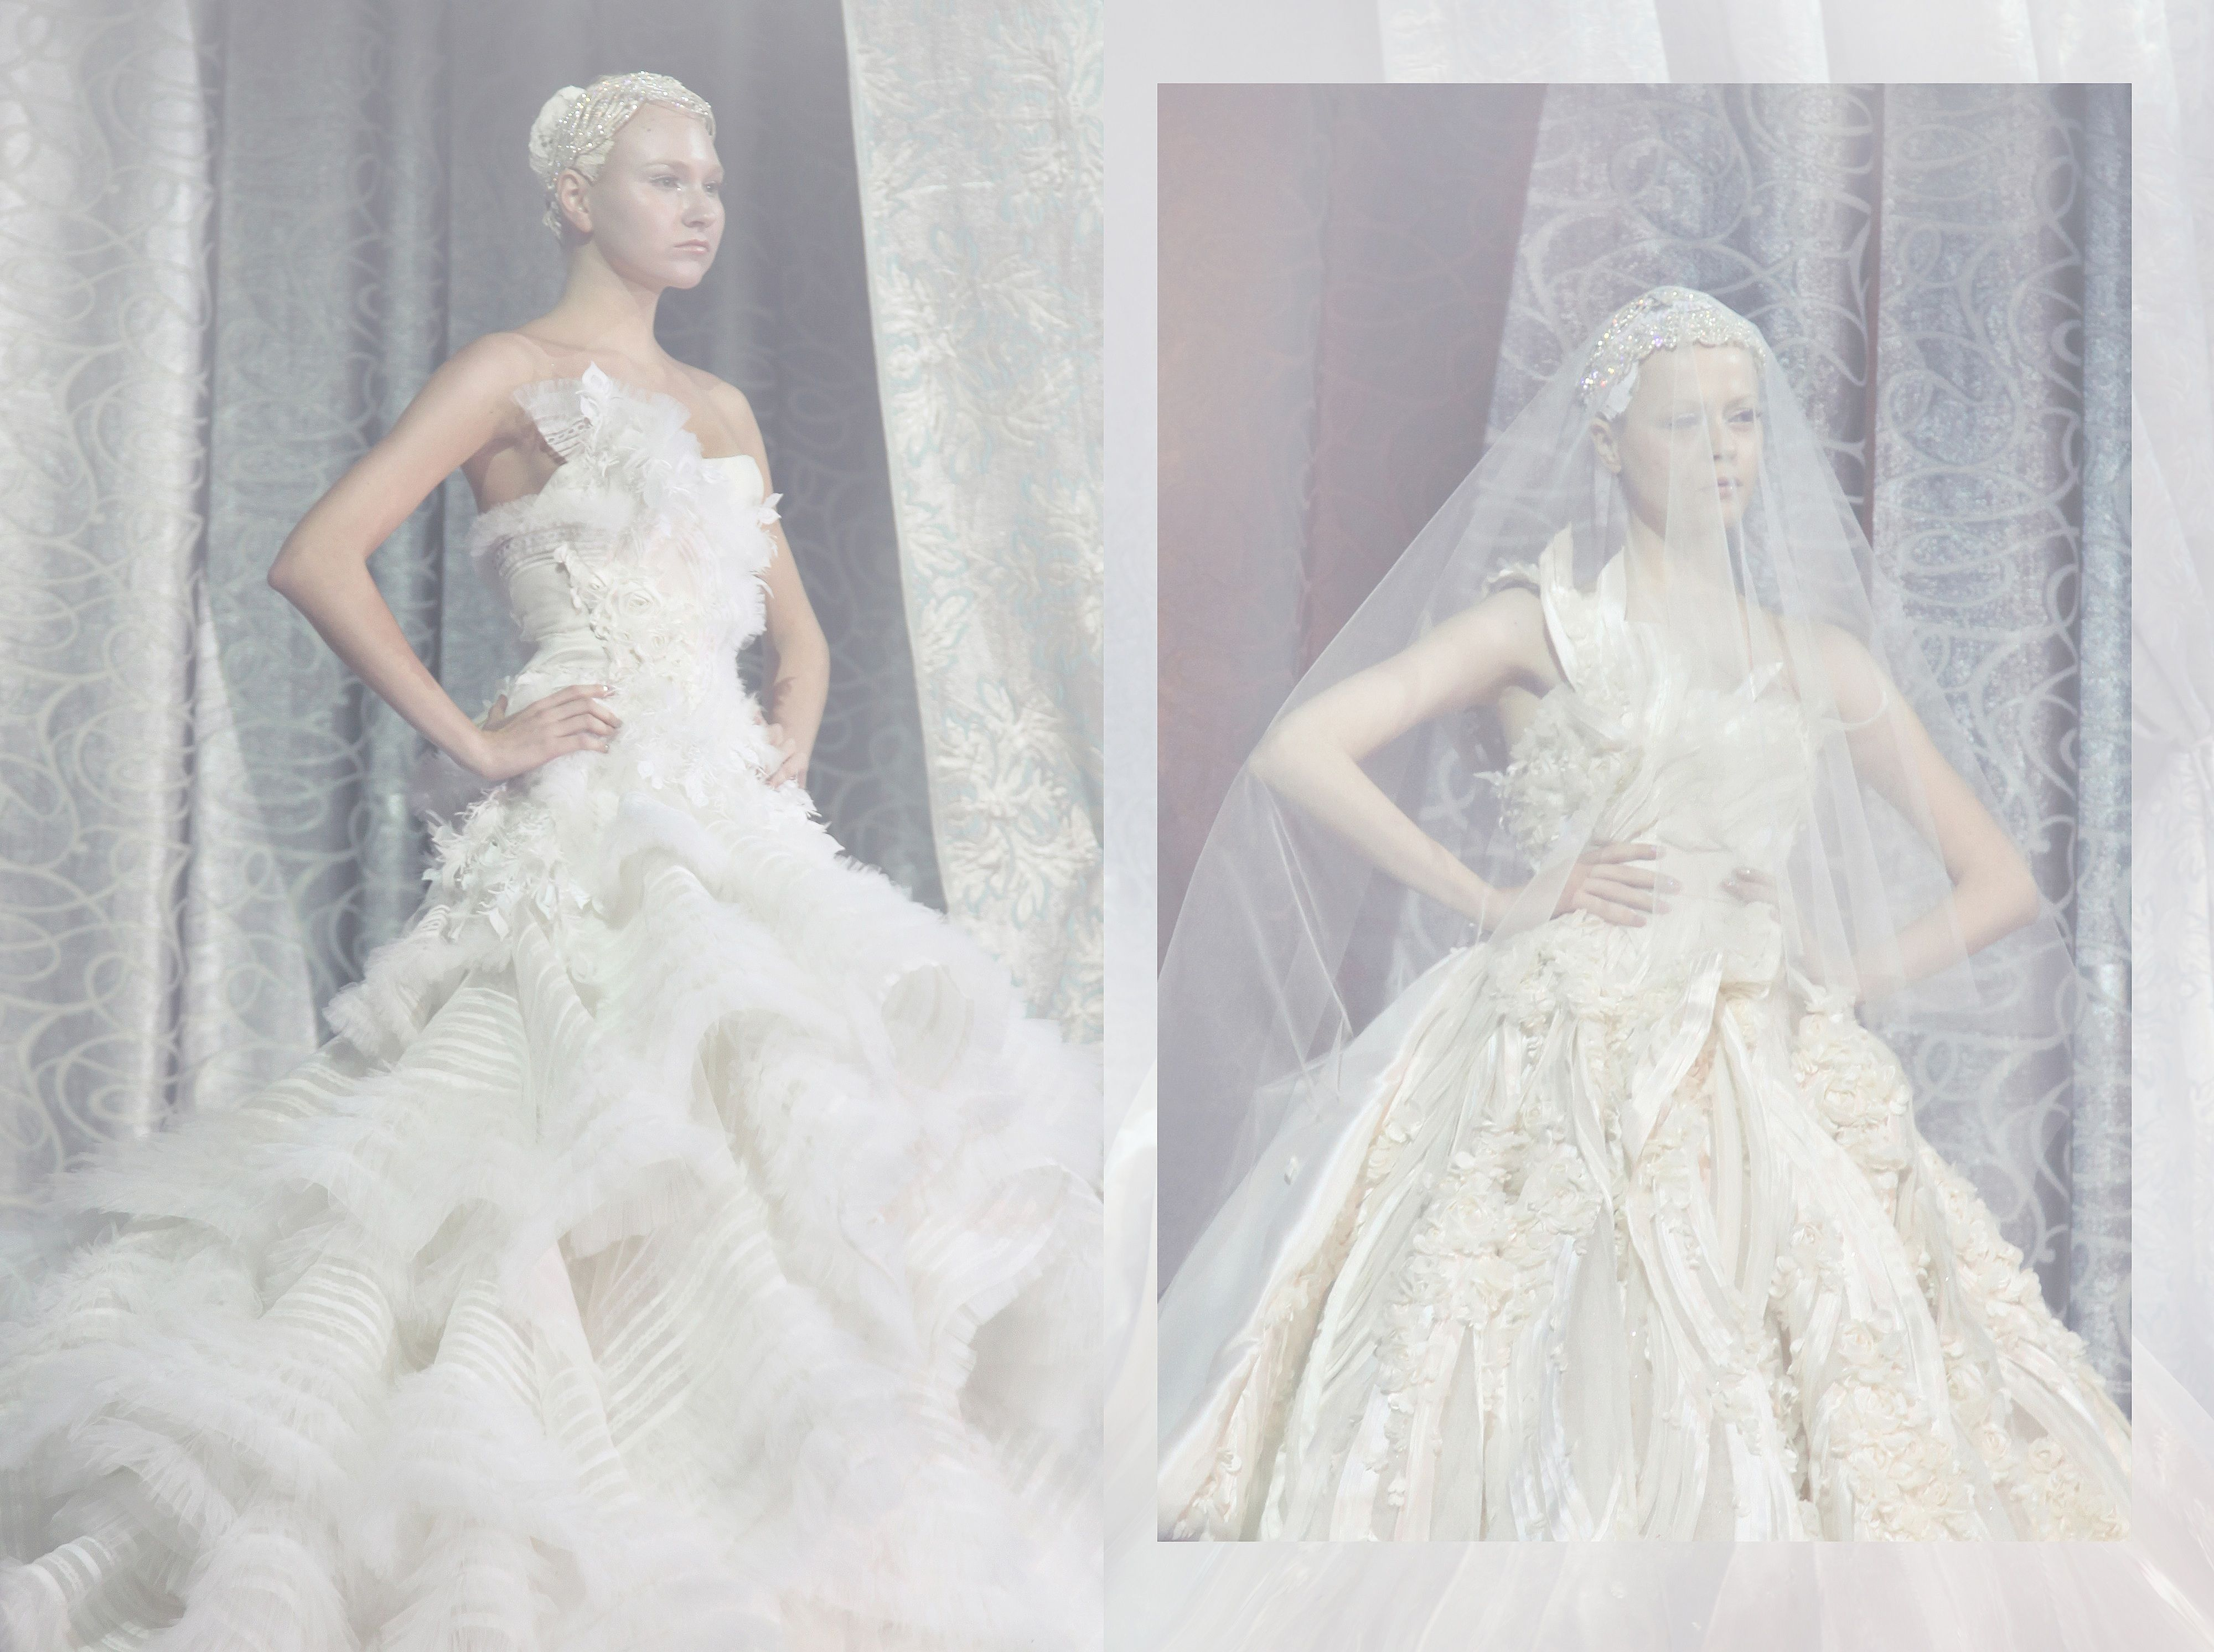 The hunger games catching fire katniss wedding dress designer - Tex Saverio Bridal Gown This Is The Runway Version Of Katniss Capitol Couture Dress